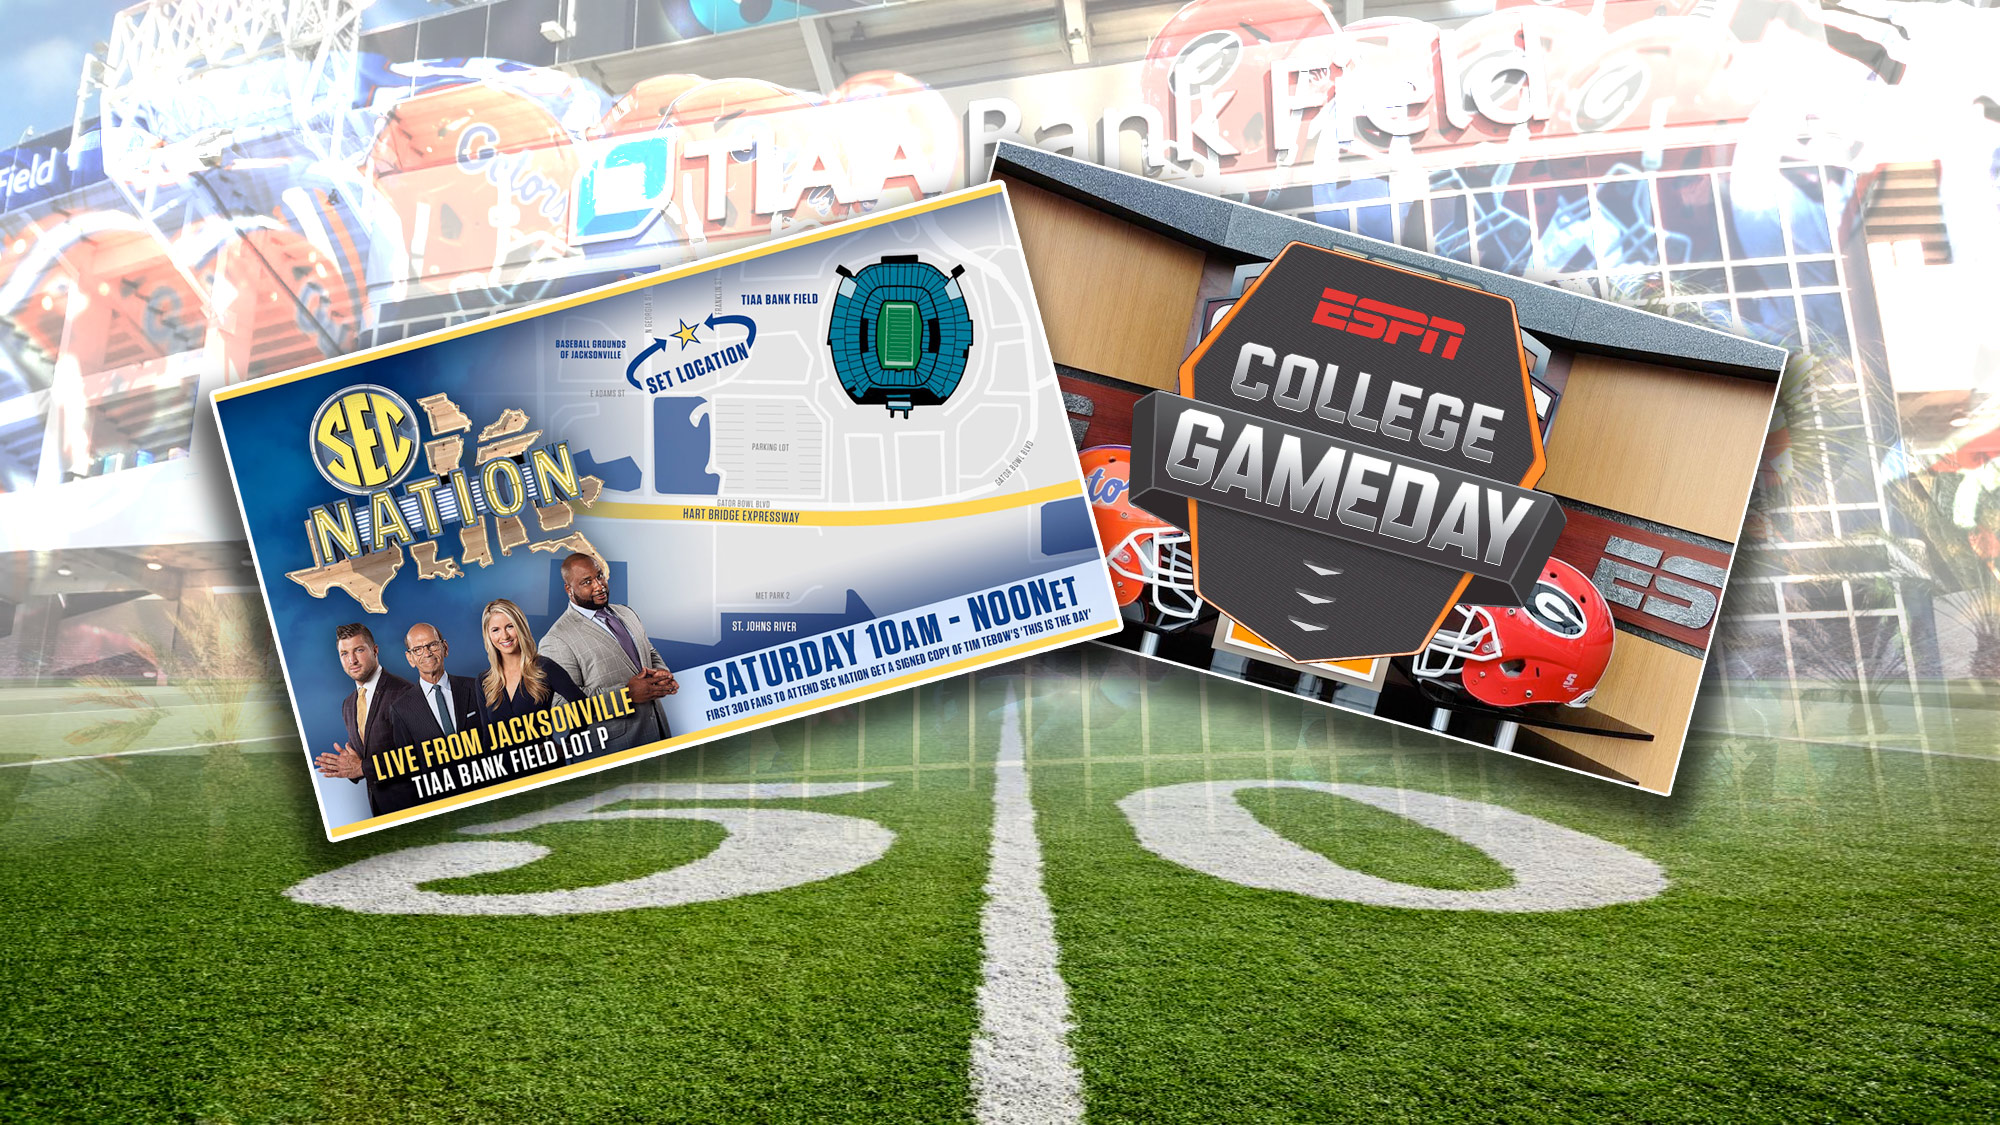 SEC Nation and ESPN Gameday Coming to Jacksonville